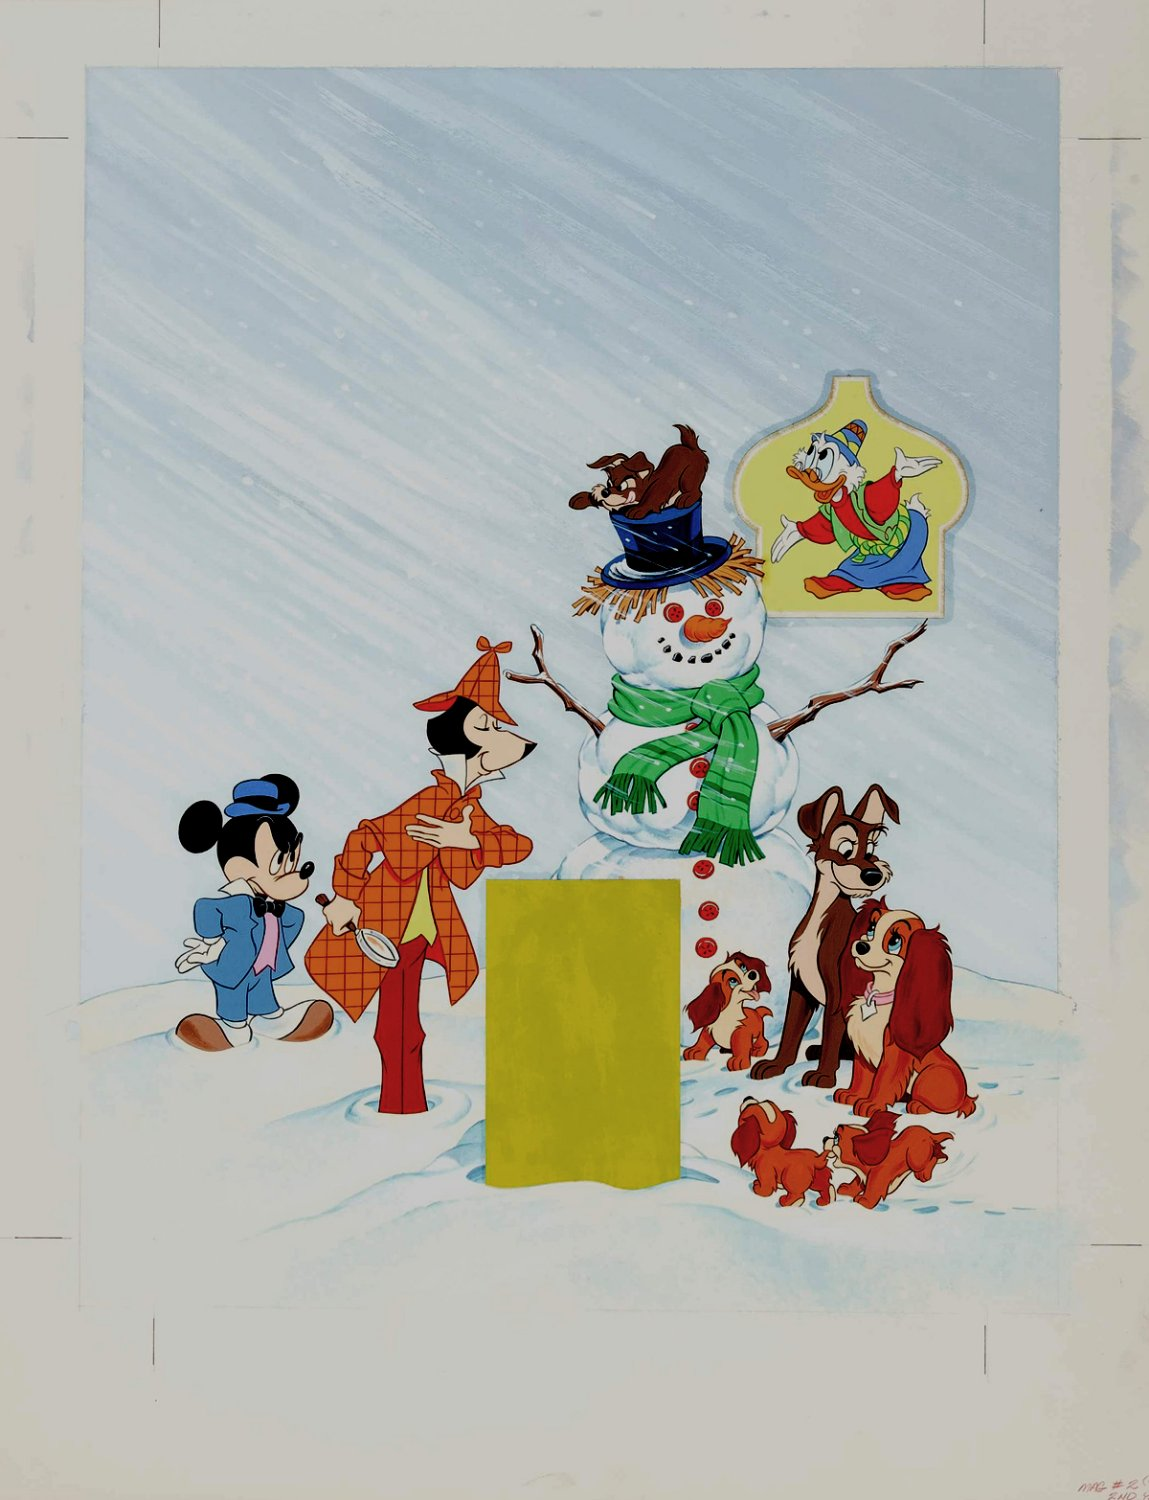 Disney Magazine Cover Painting (Mickey, Scrooge McDuck, Lady and the Tramp) 1976